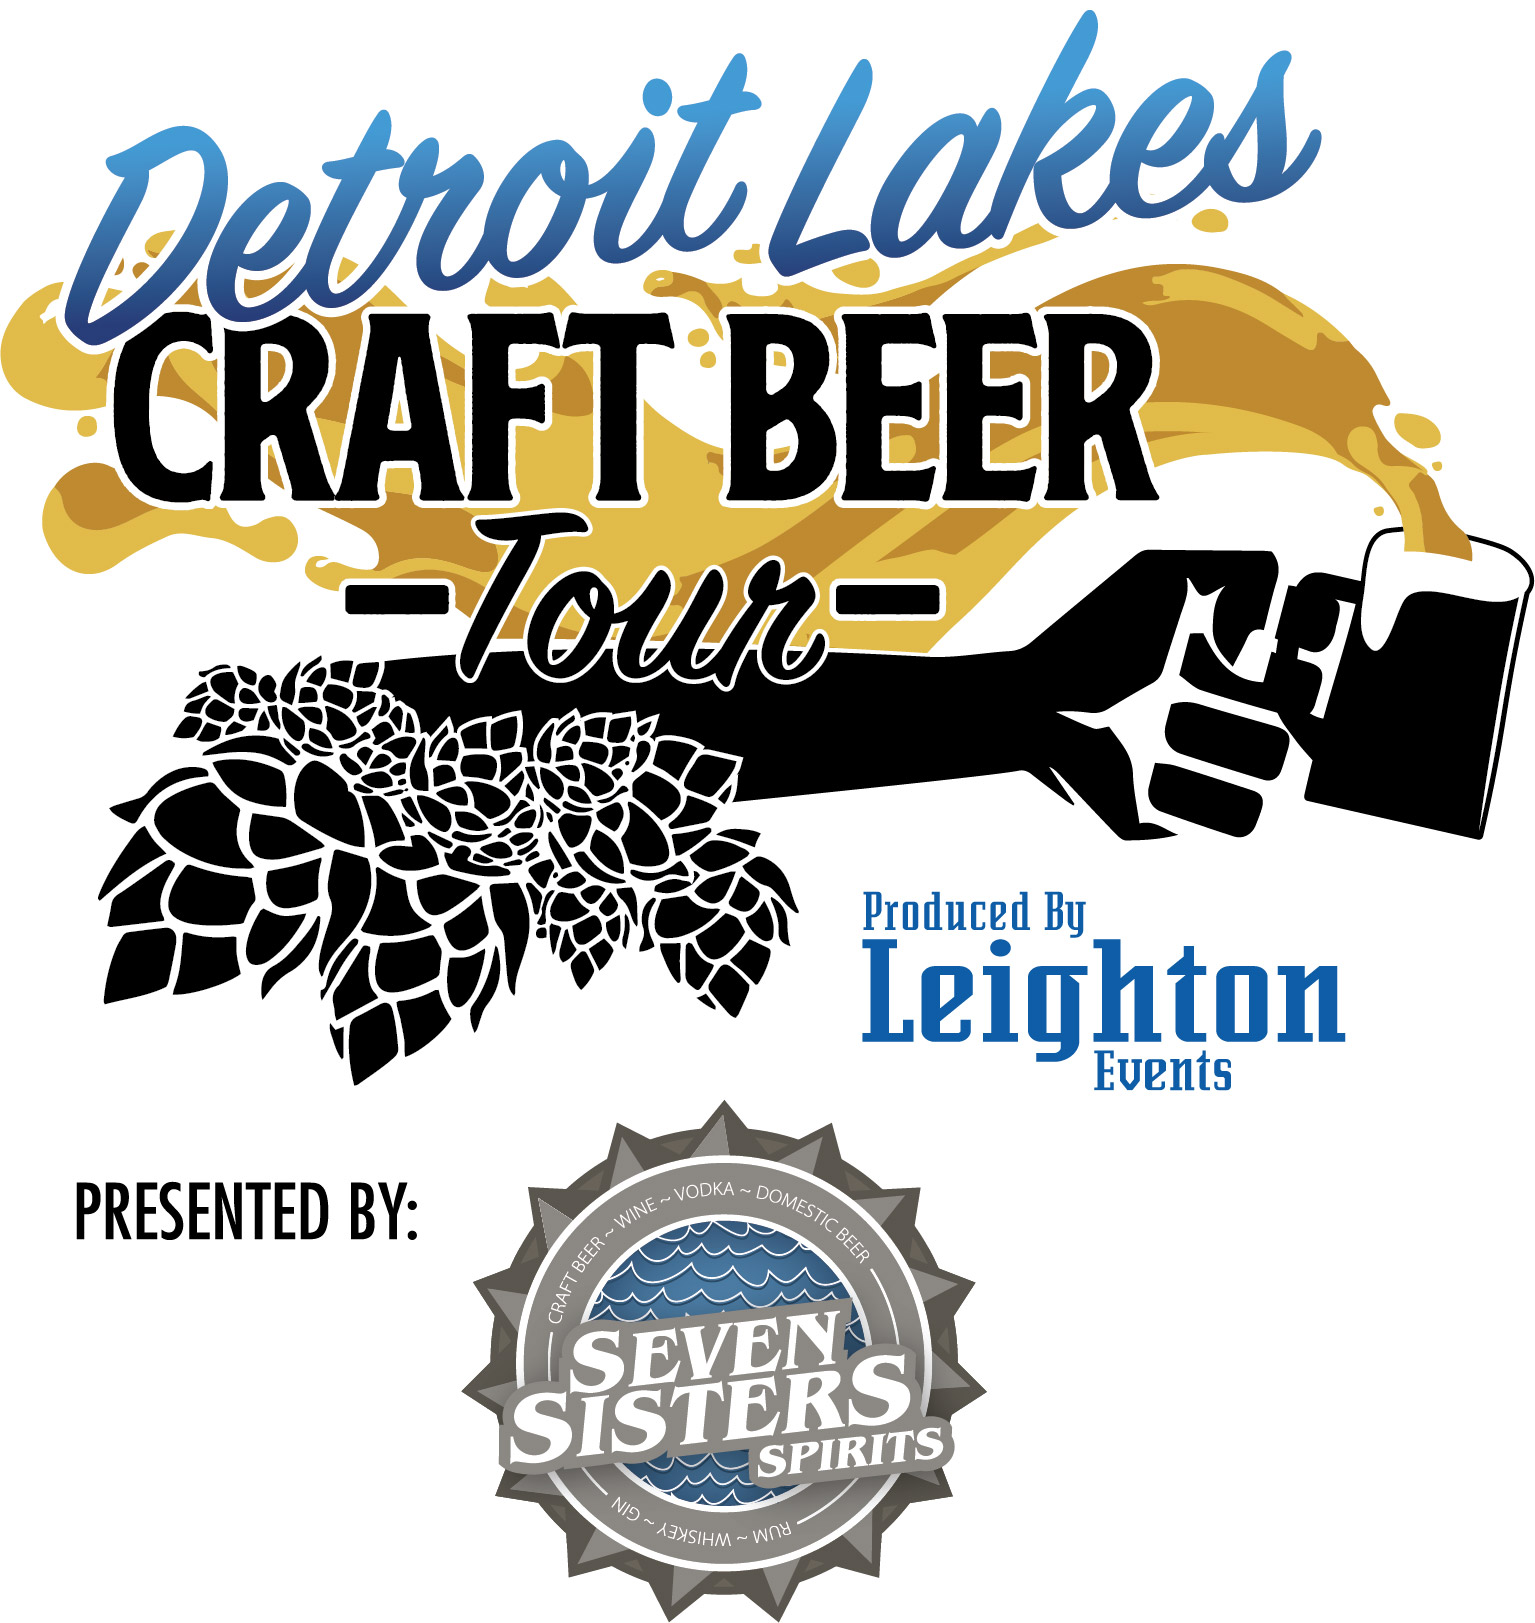 Photo of Detroit Lakes Craft Beer Tour